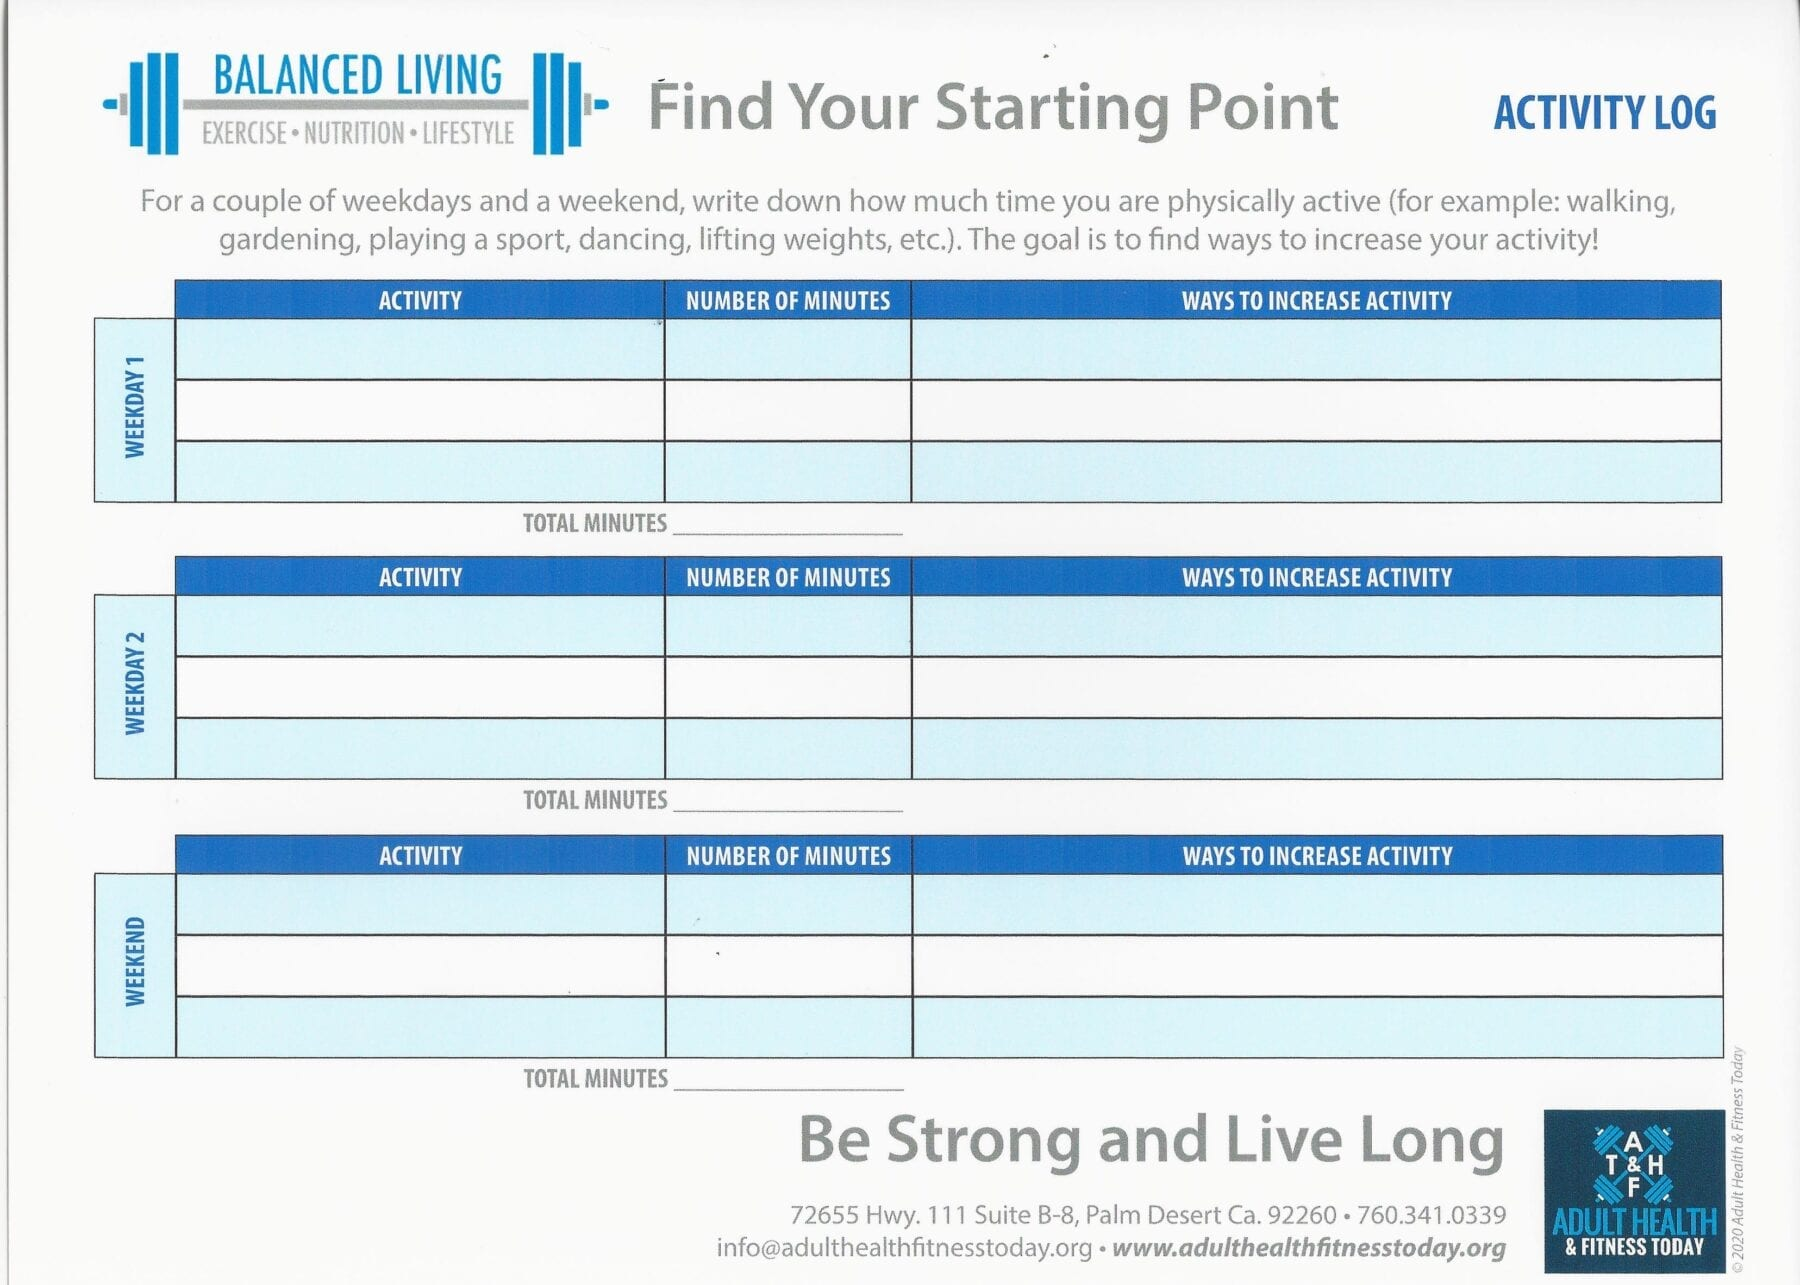 Find your starting point